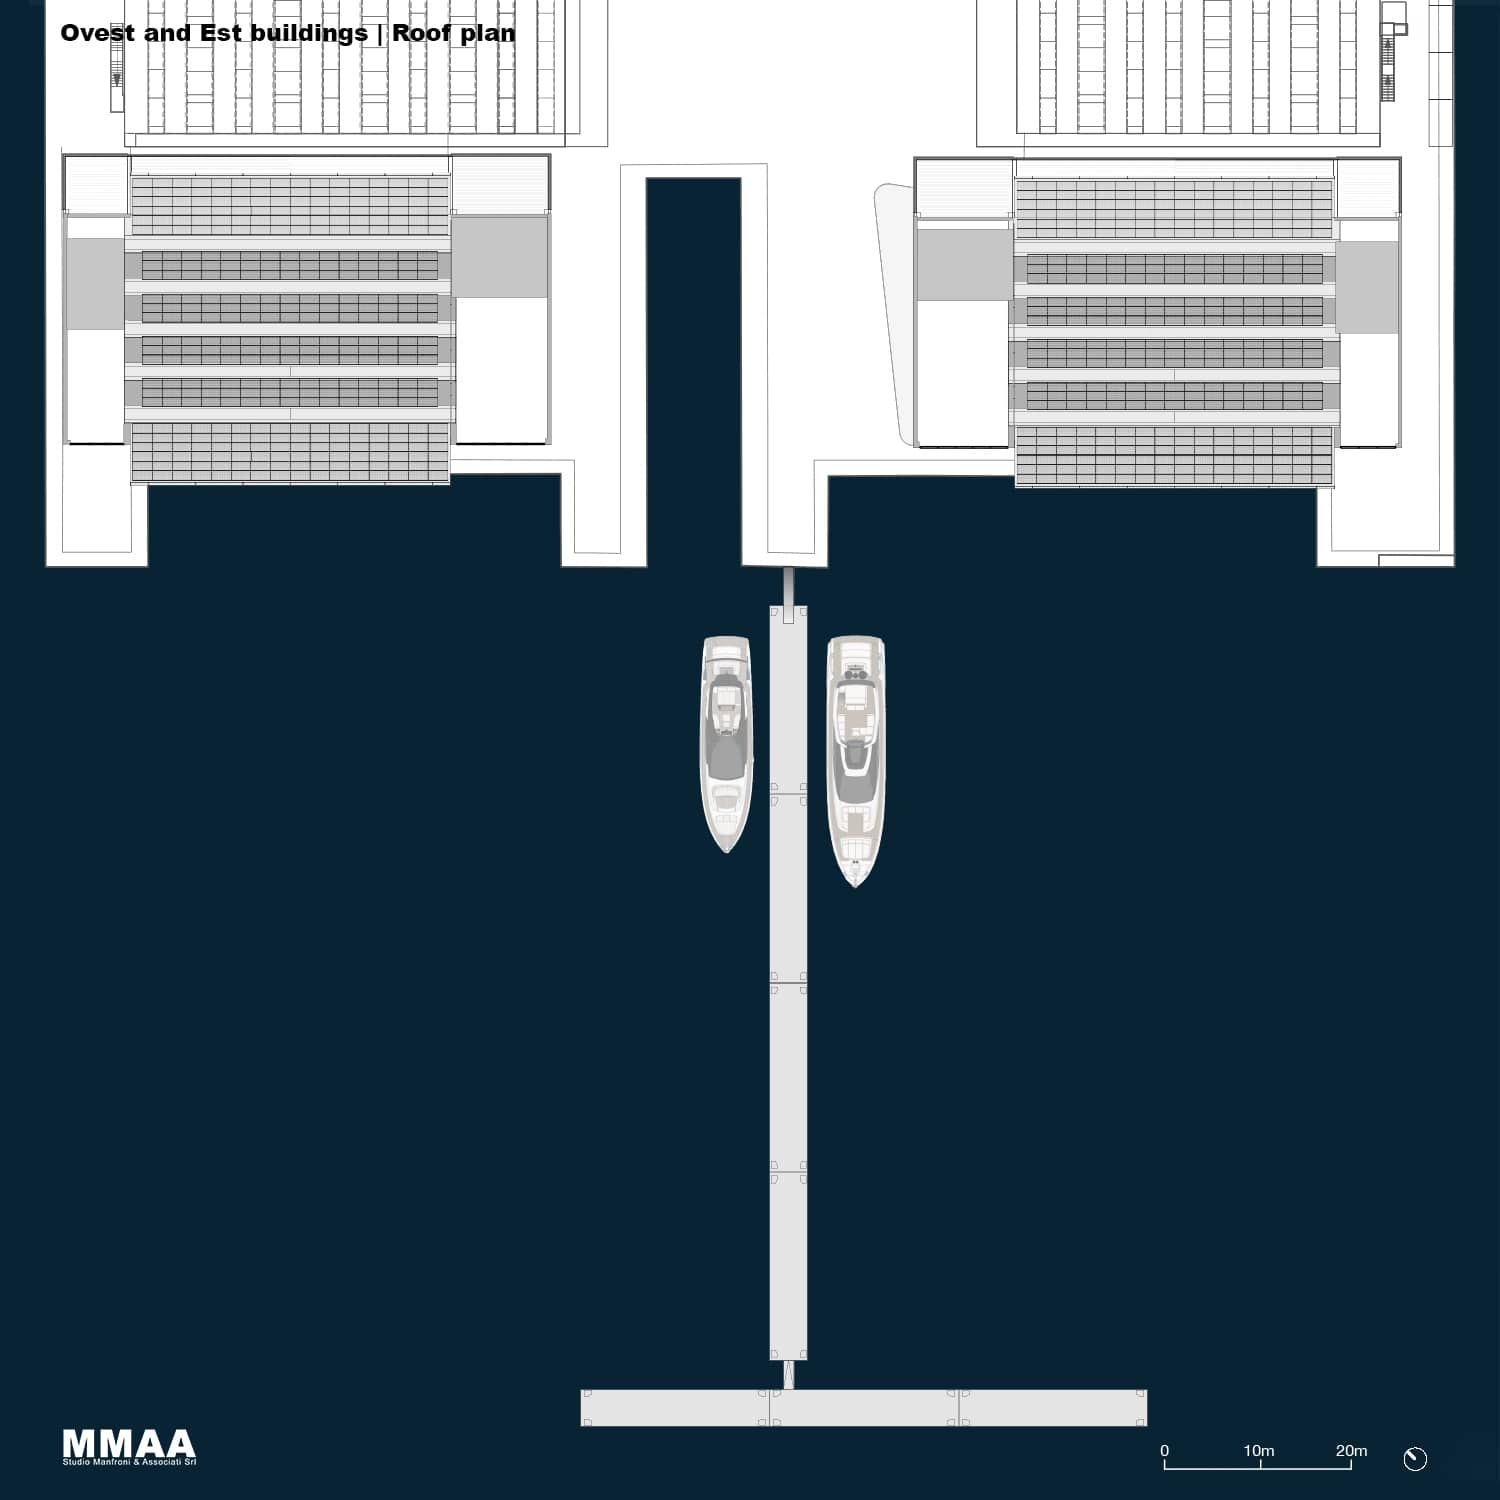 Ovest and East Building - Roof Plan MMAA}